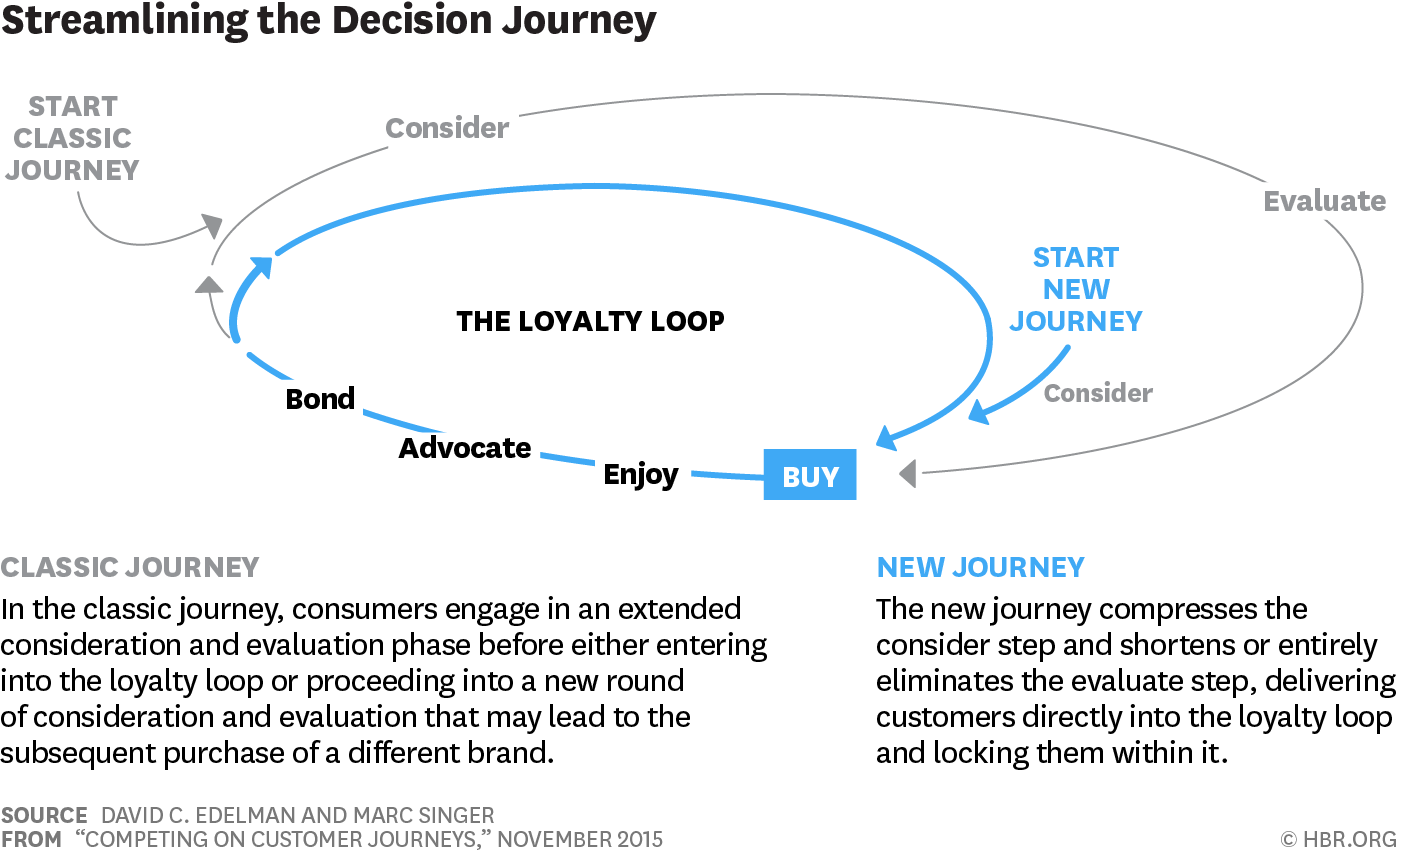 https://hbr.org/2015/11/competing-on-customer-journeys